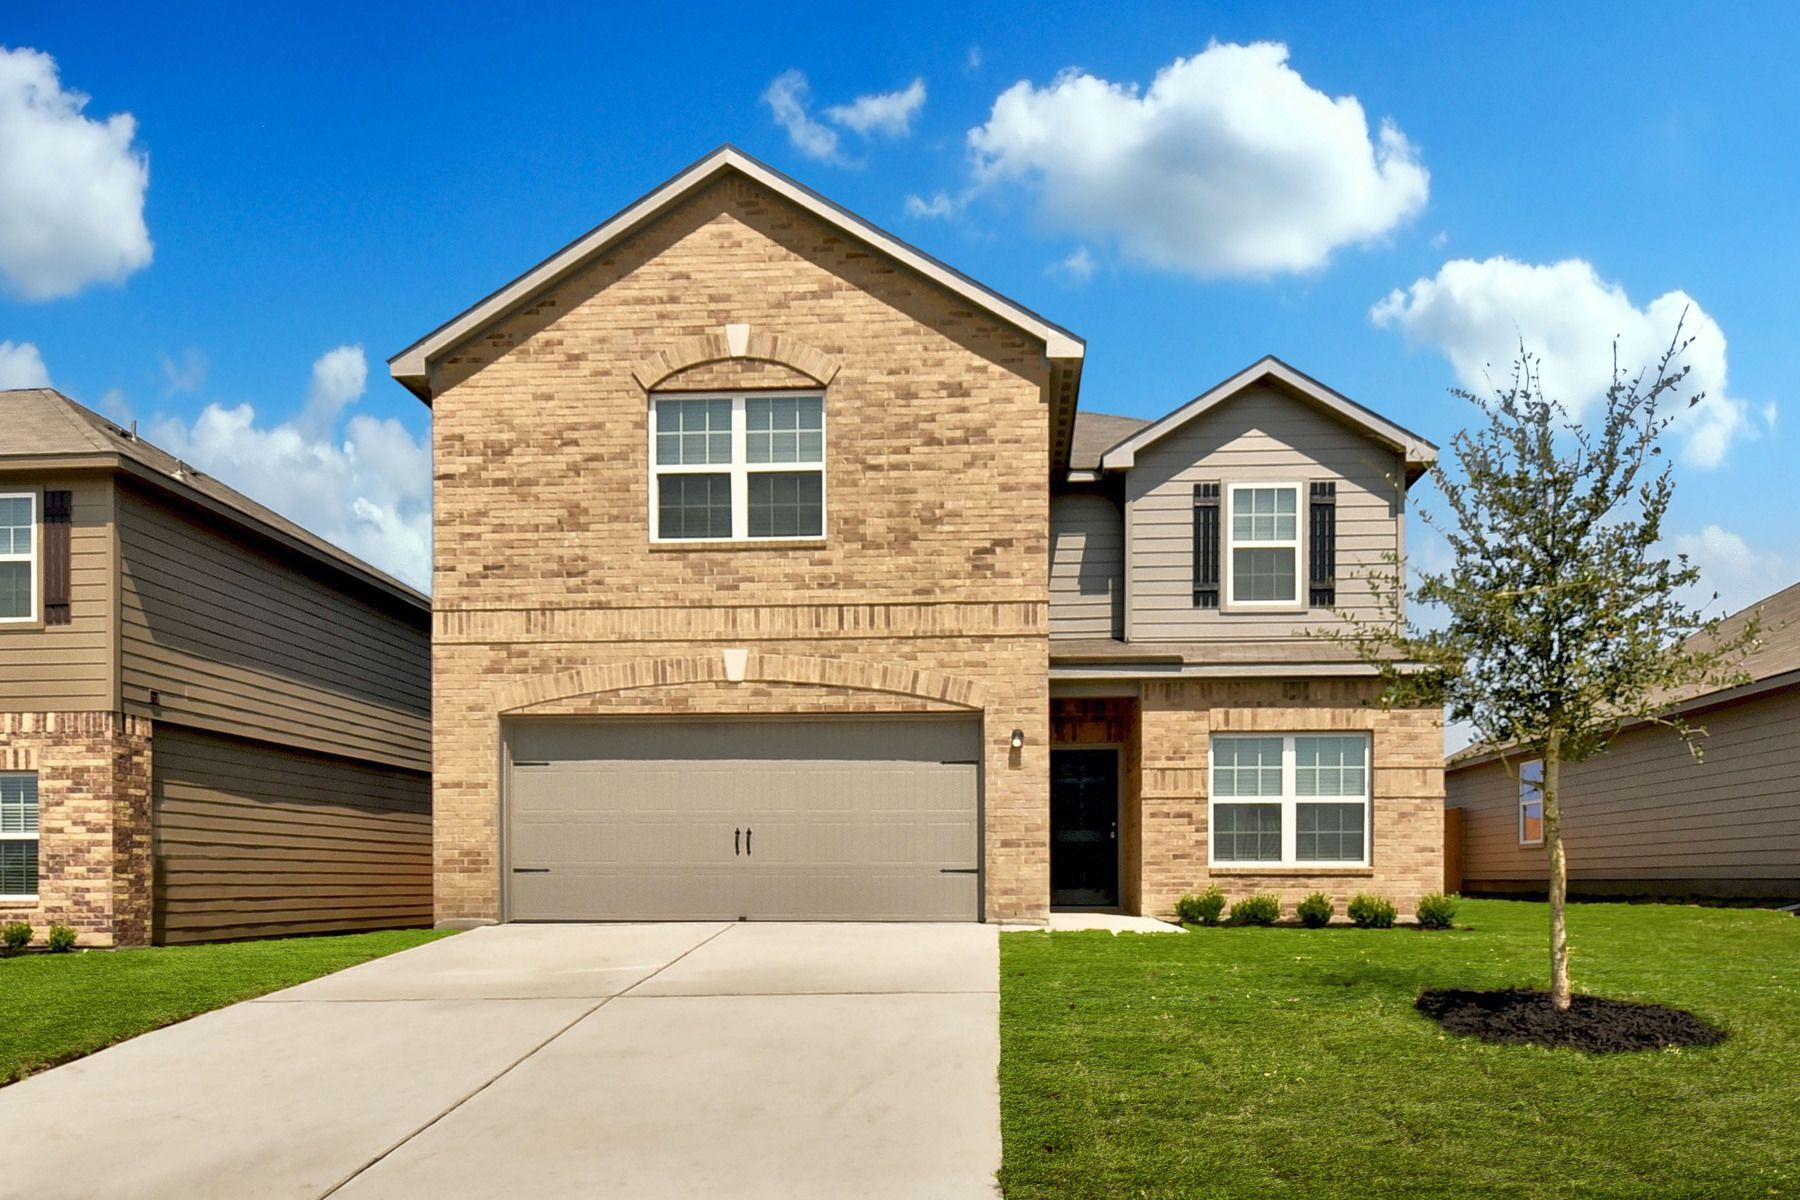 LGI Homes at Homestead Estates:The spacious Travis plan is available now.